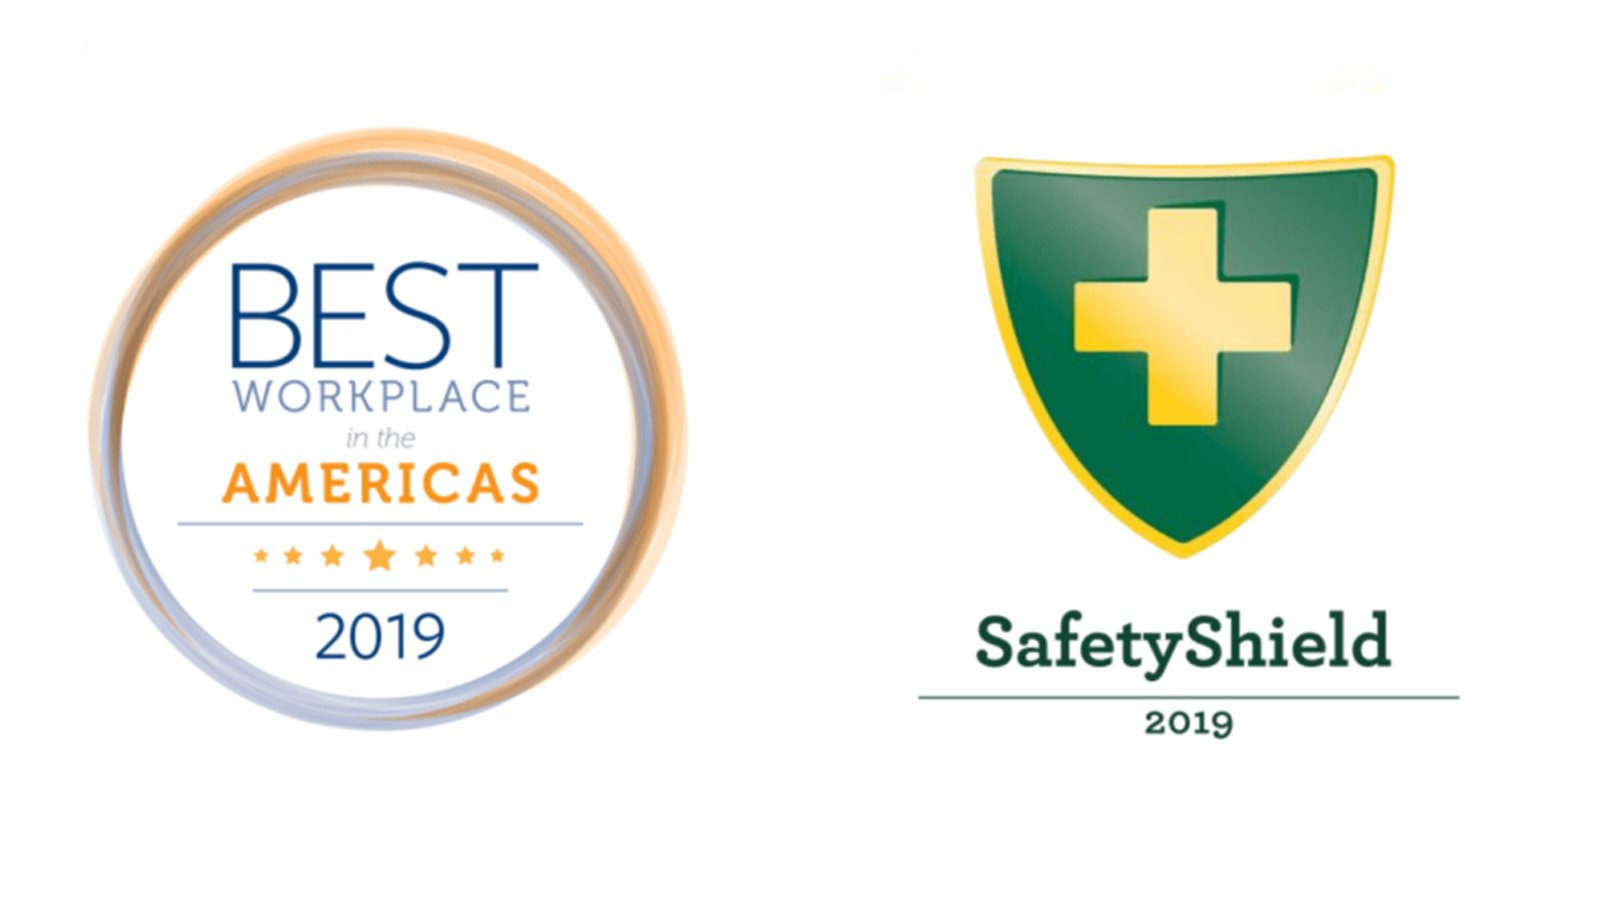 Oliver Honored with Best Workplace and Safety Shield Award in Best Workplace in the Americas 2019 Competition